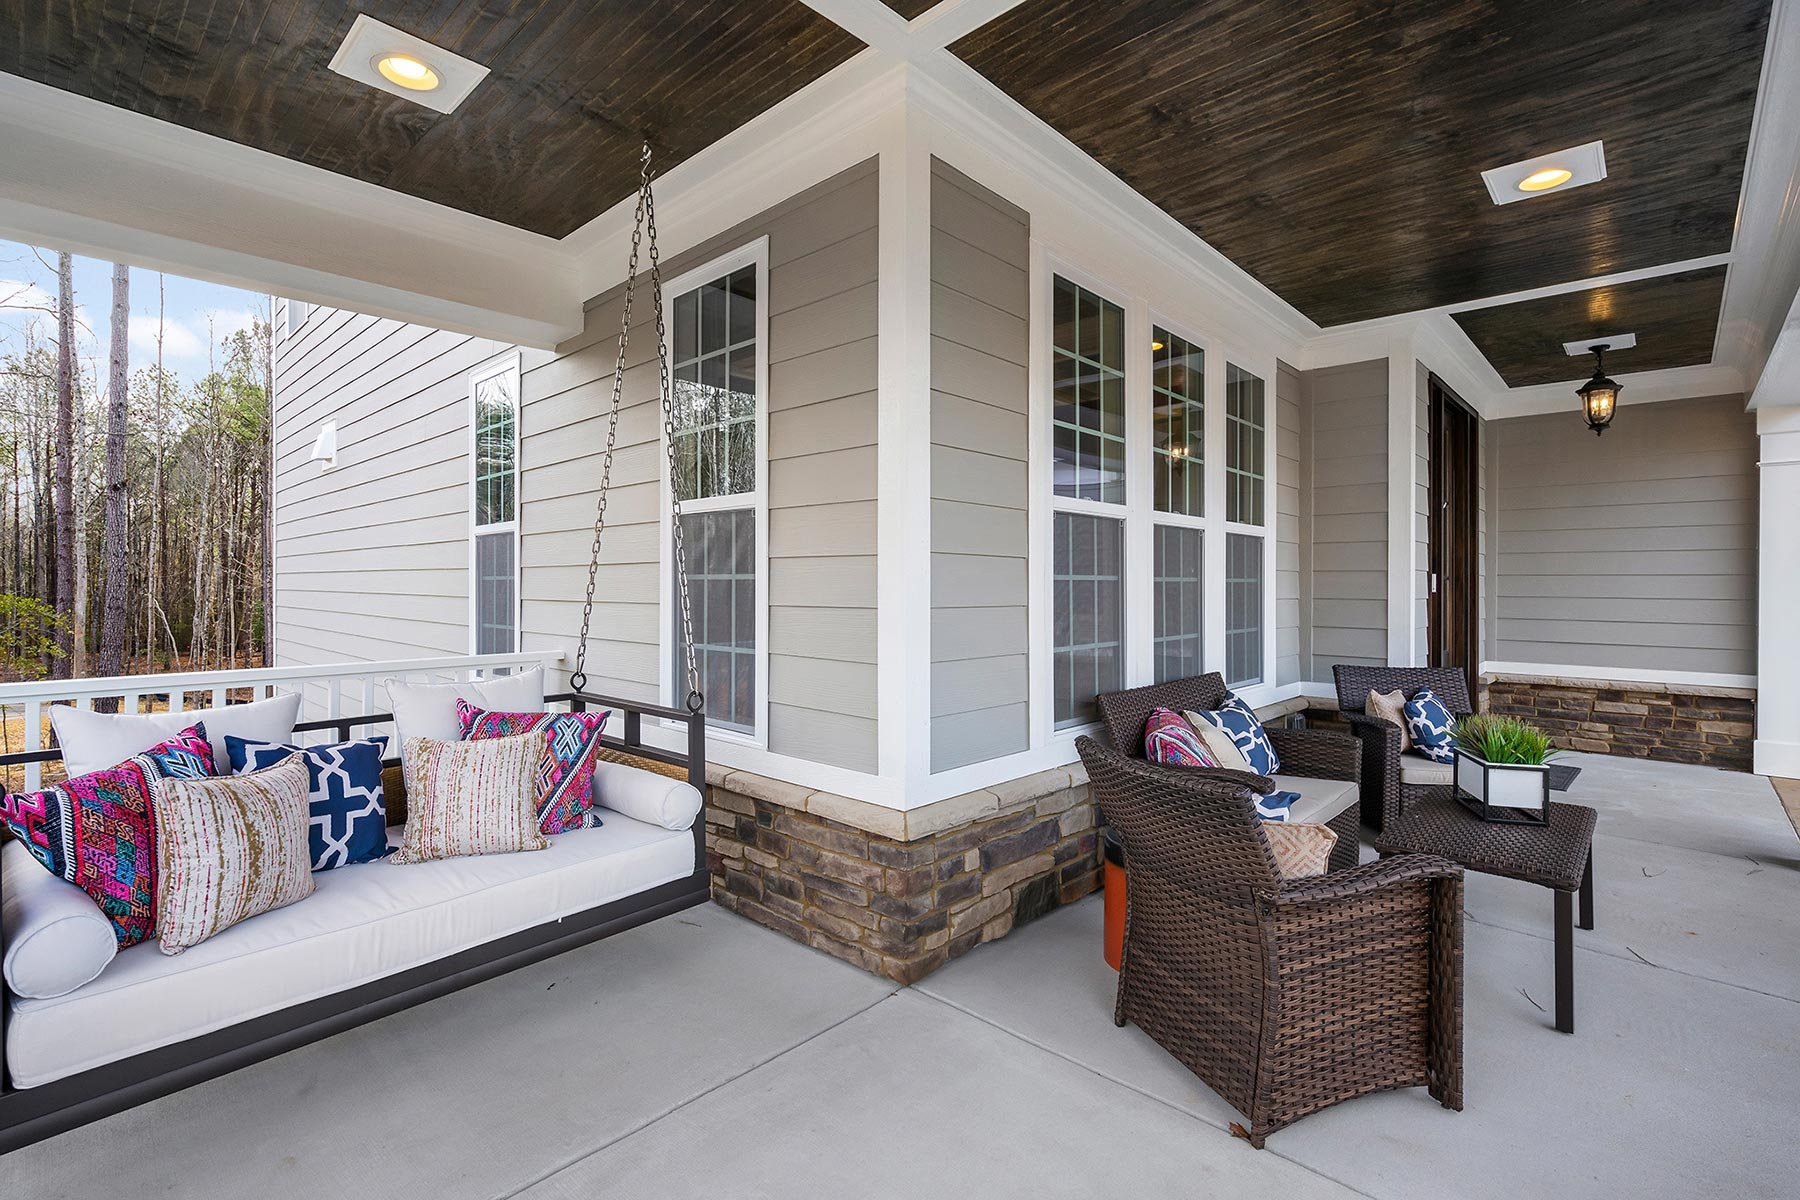 Ballentine Place Front Porch in Holly Springs North Carolina by Mattamy Homes